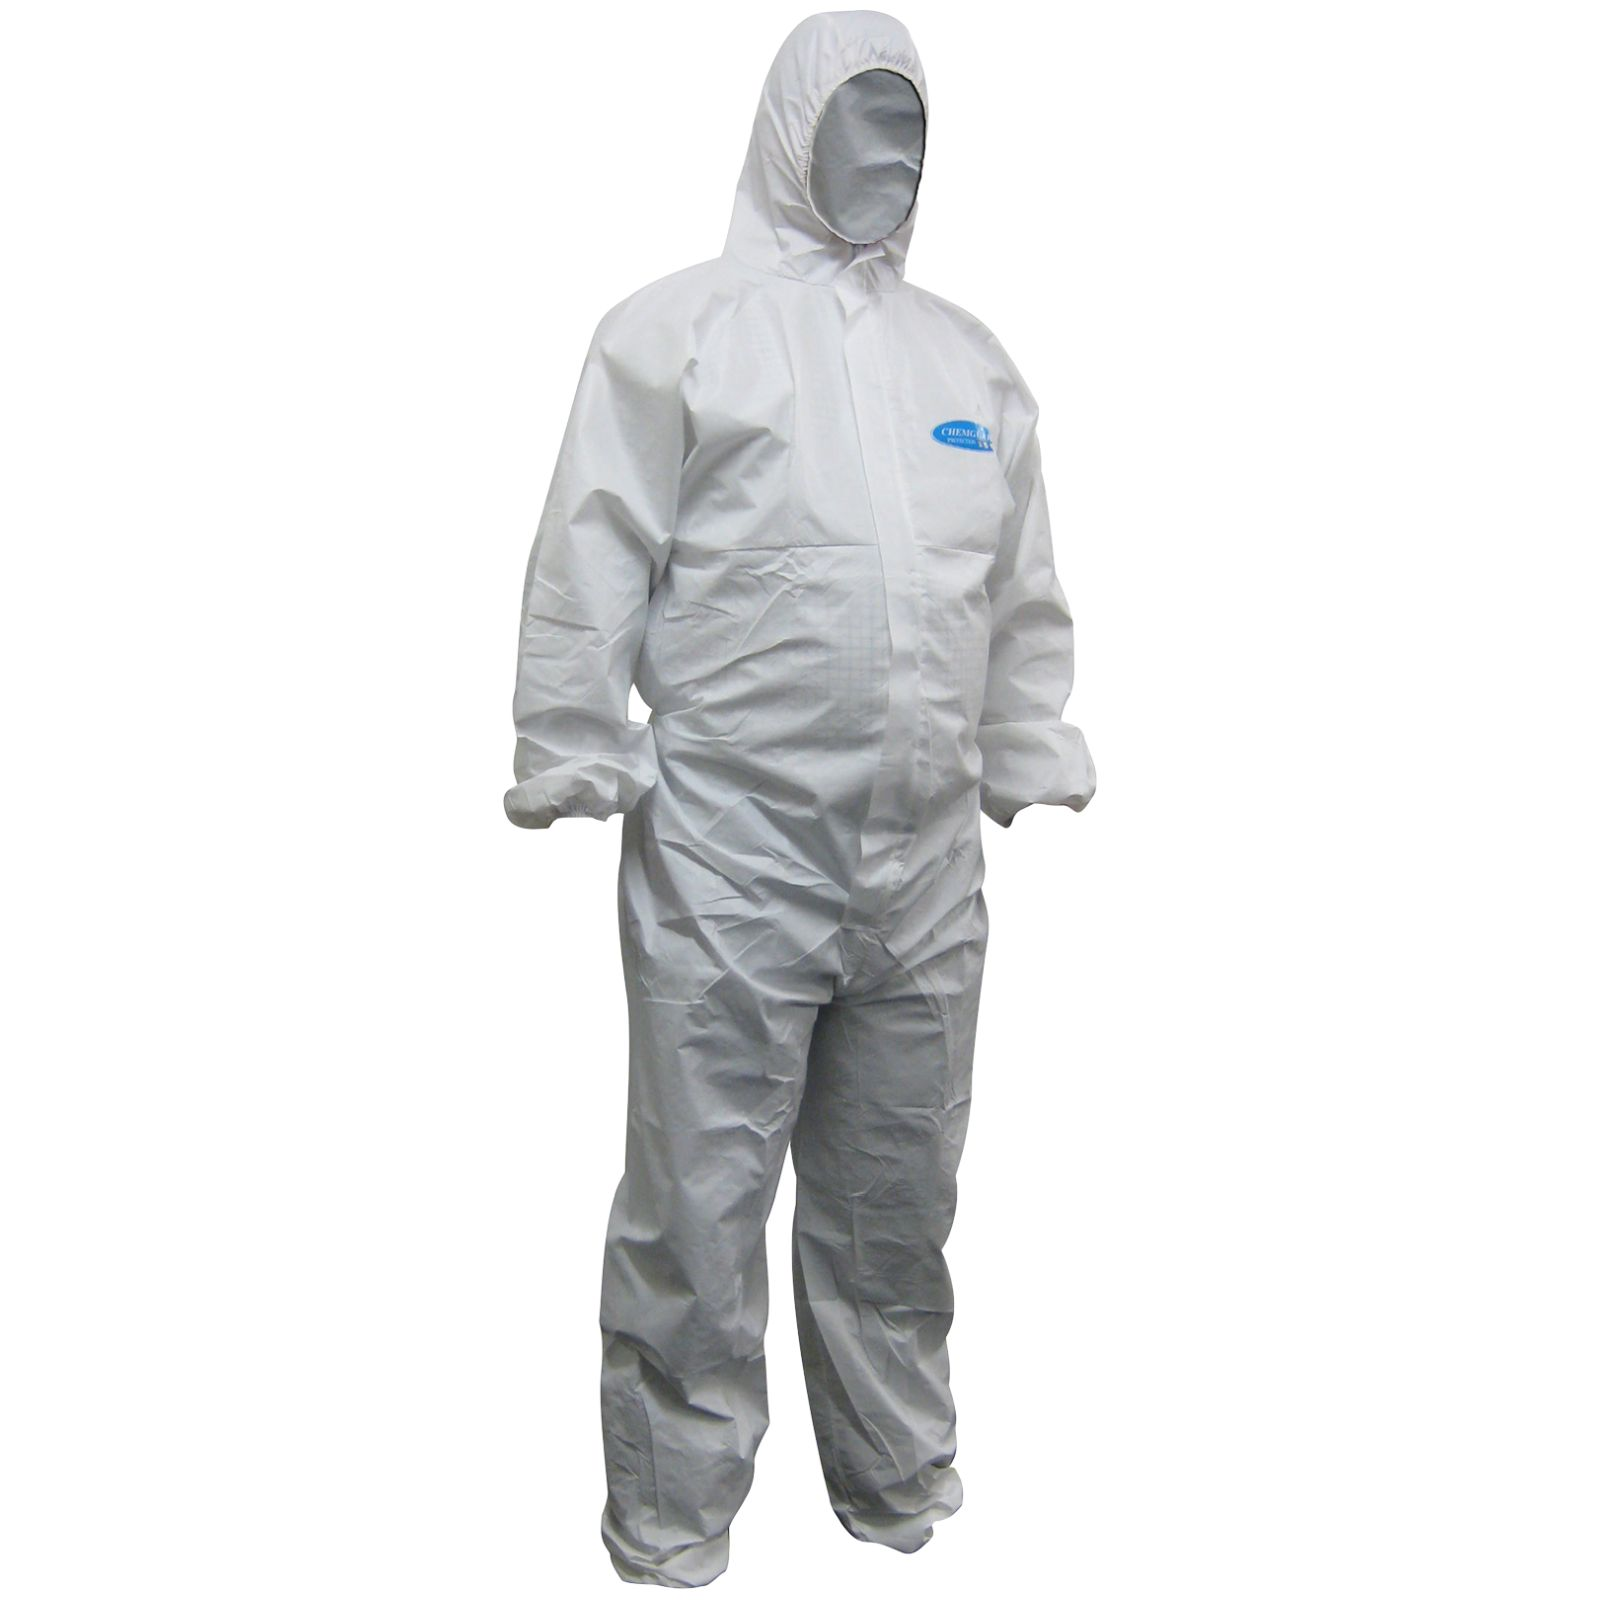 Maxisafe Large Koolguard Laminated Disposable Coveralls